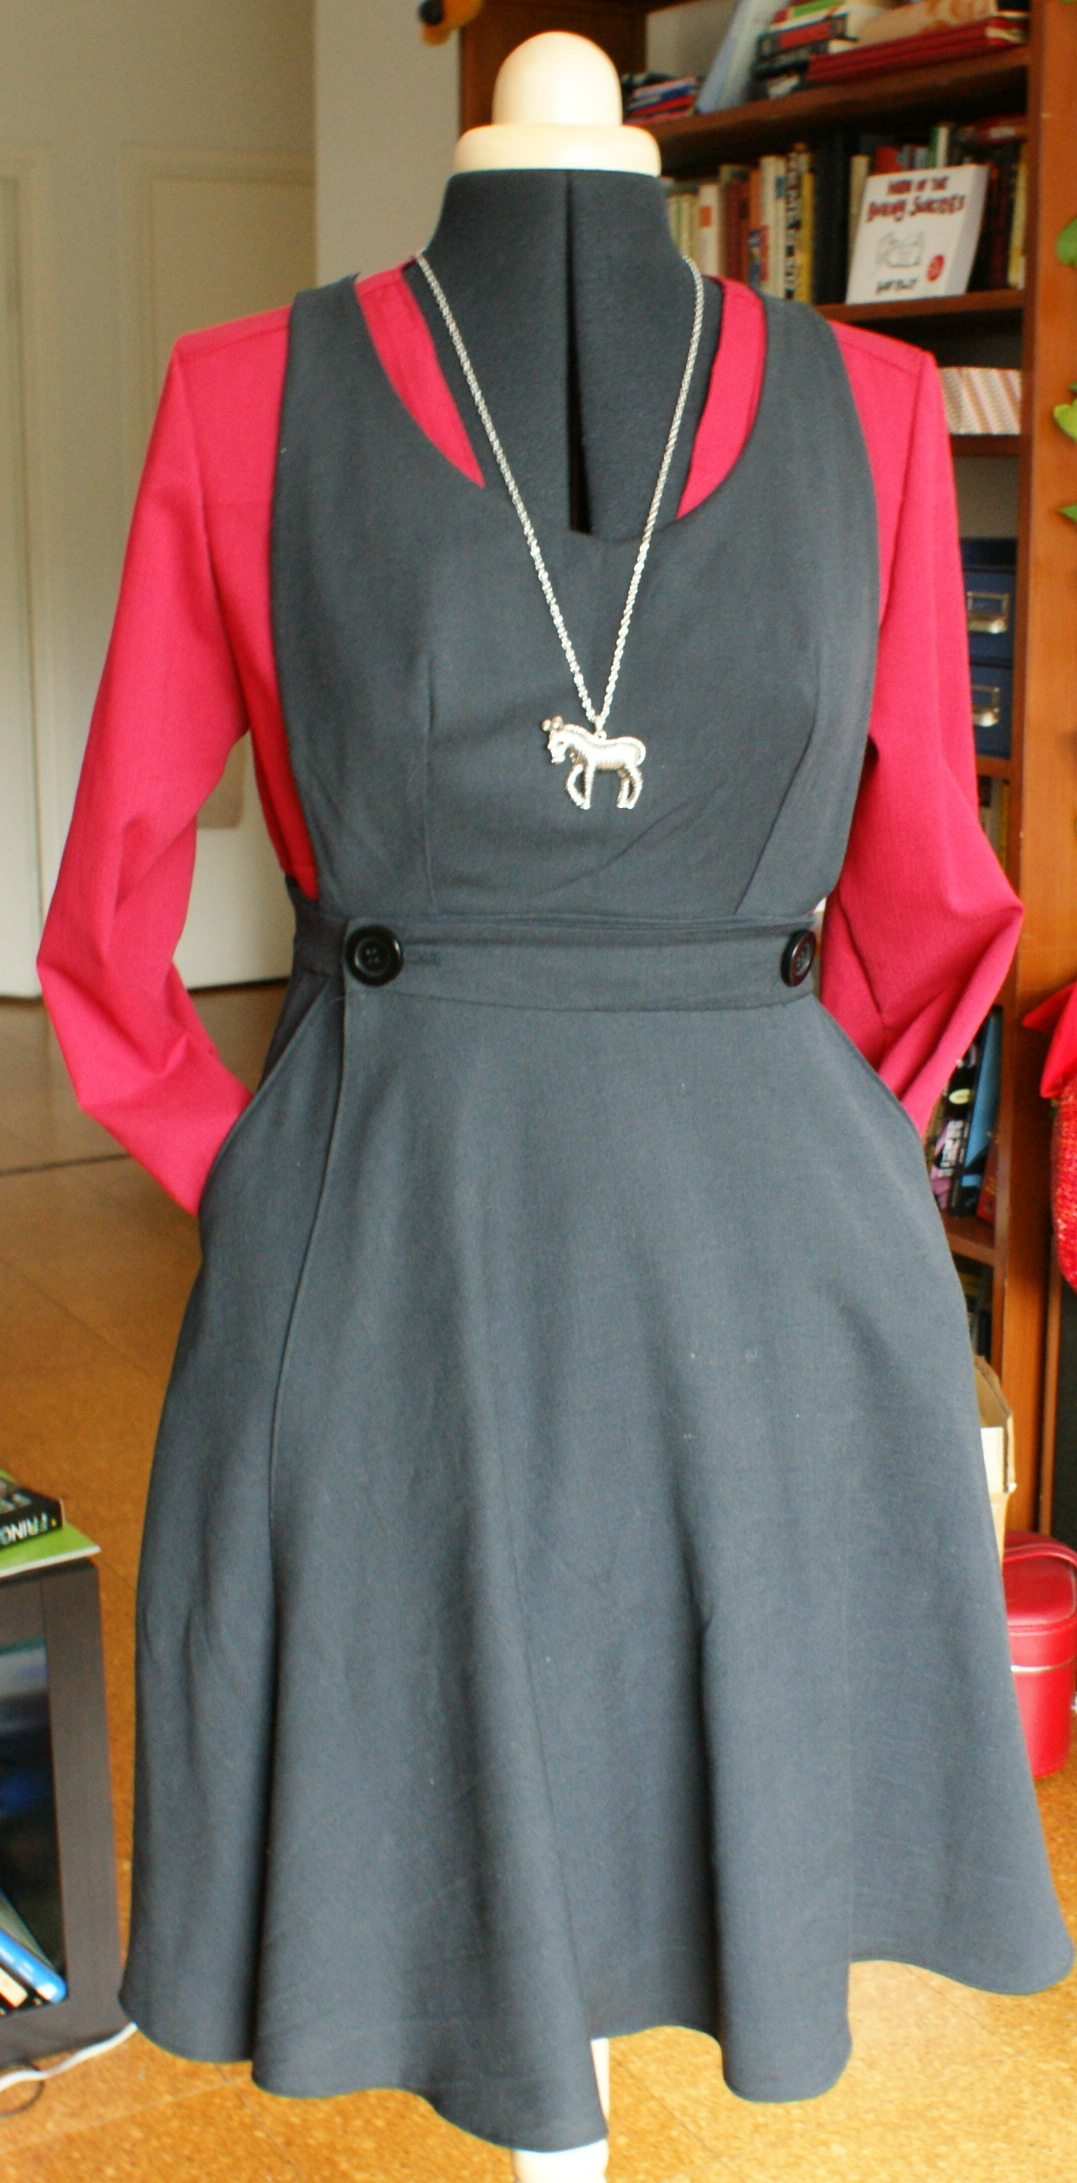 Uniform Inspired Pinafore Dress Sewing Projects